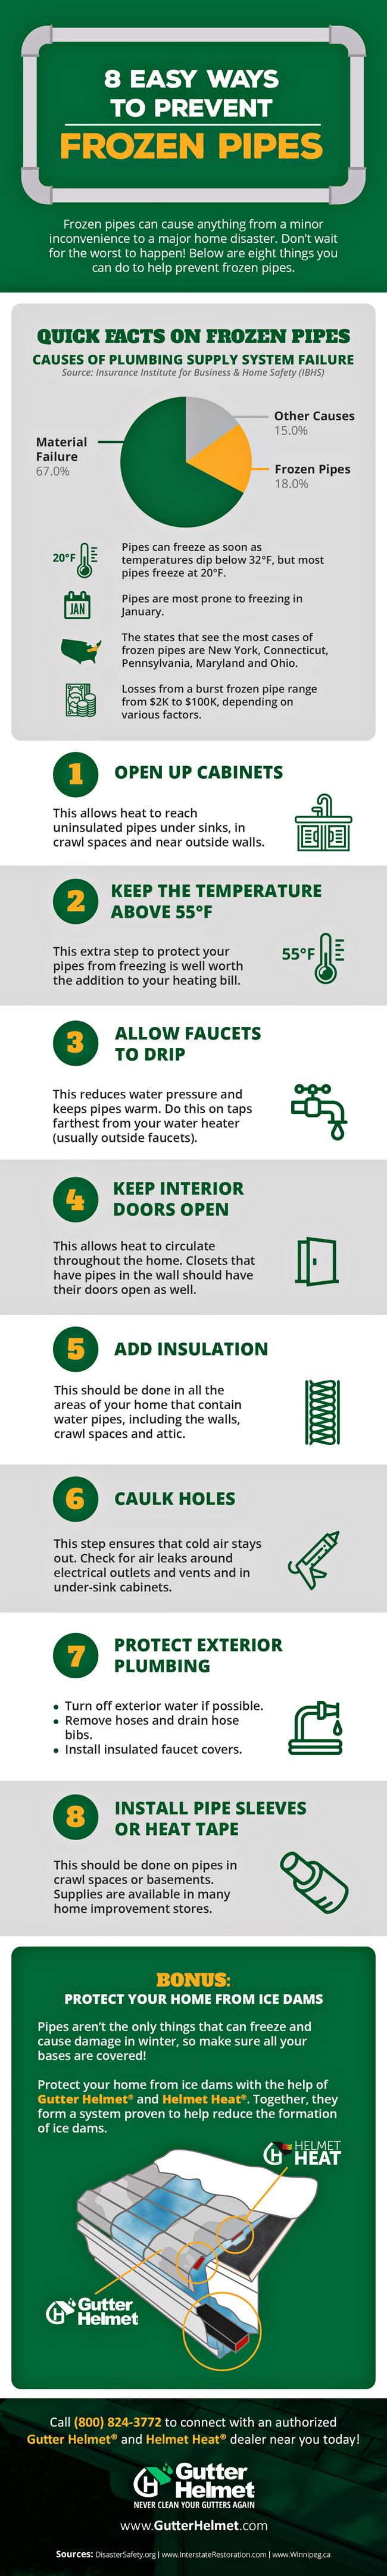 Ways to Prevent Frozen Pipes